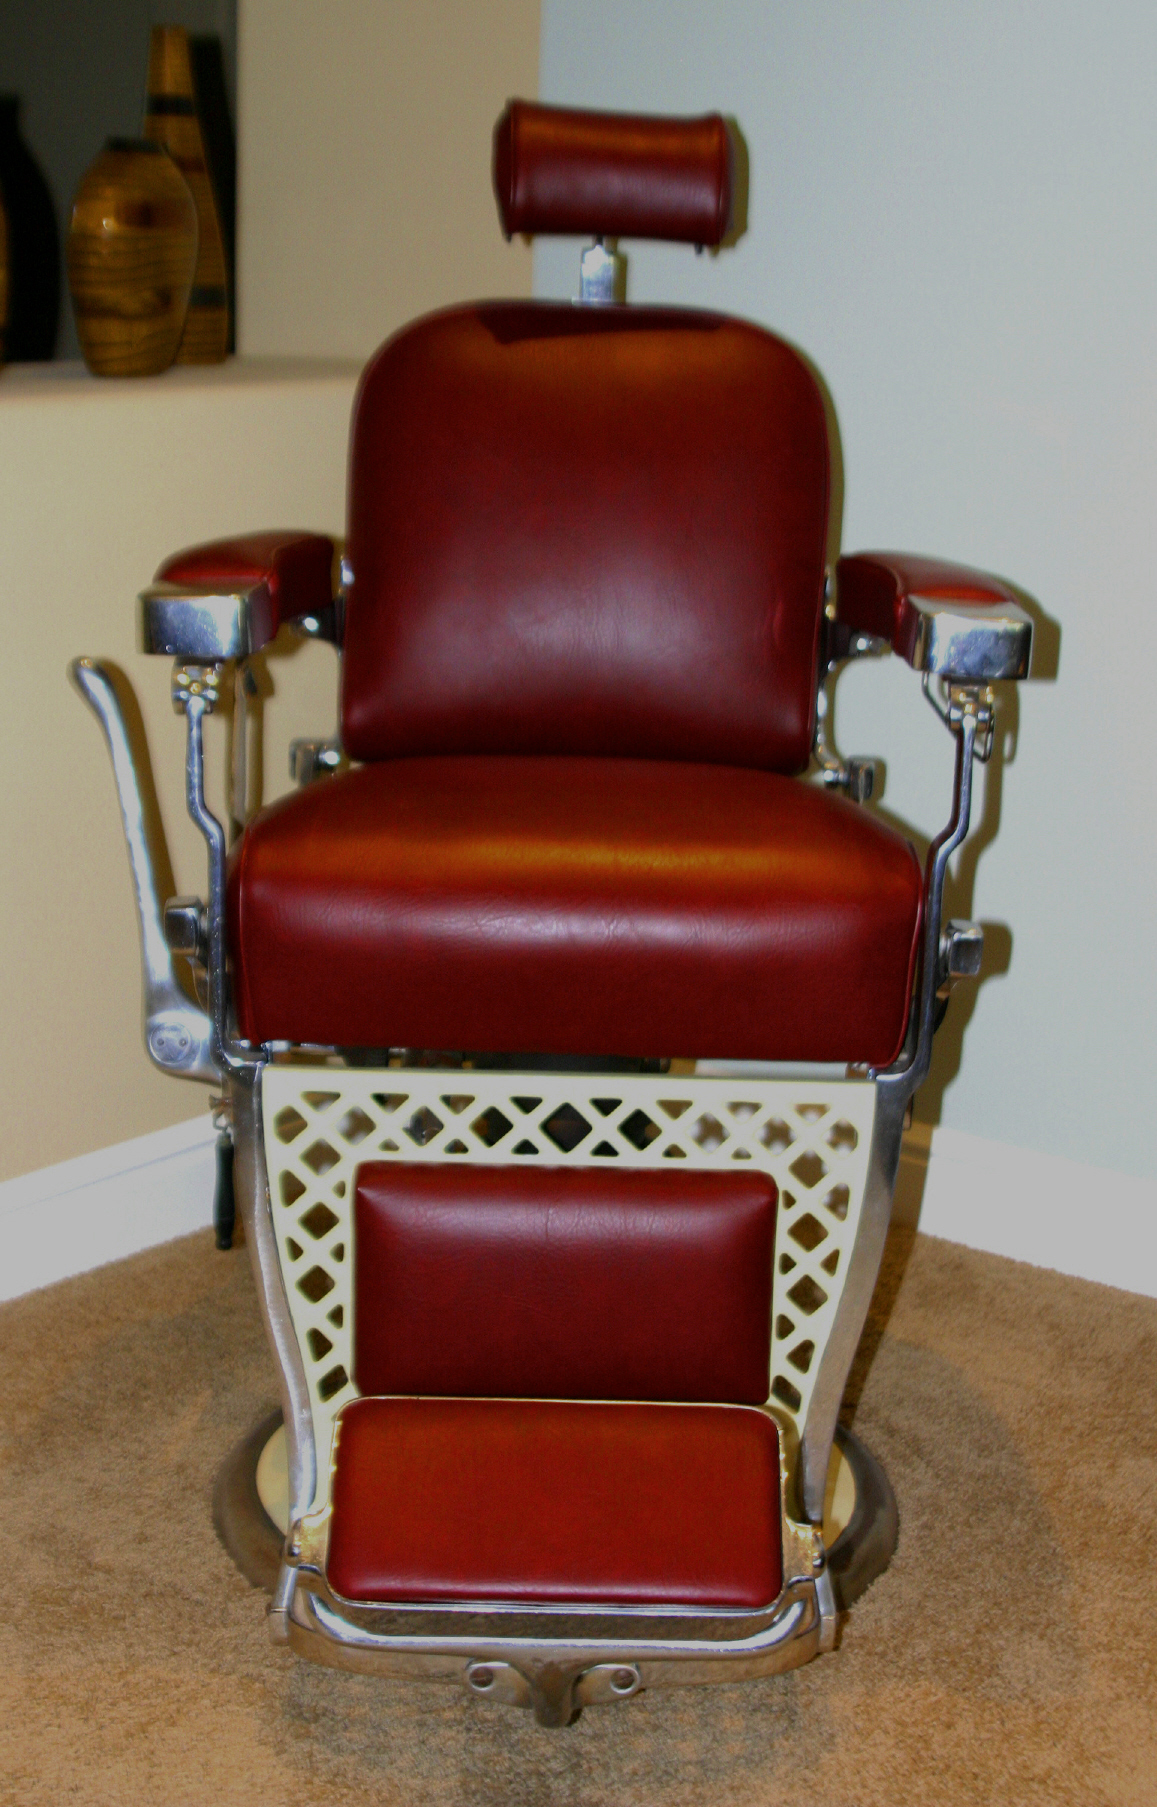 Vintage Barber For Sale : Barber chairs for sale chicago vintage - Vintage Barber For Sale: Antique Koken Barber Chair For Sale Make An